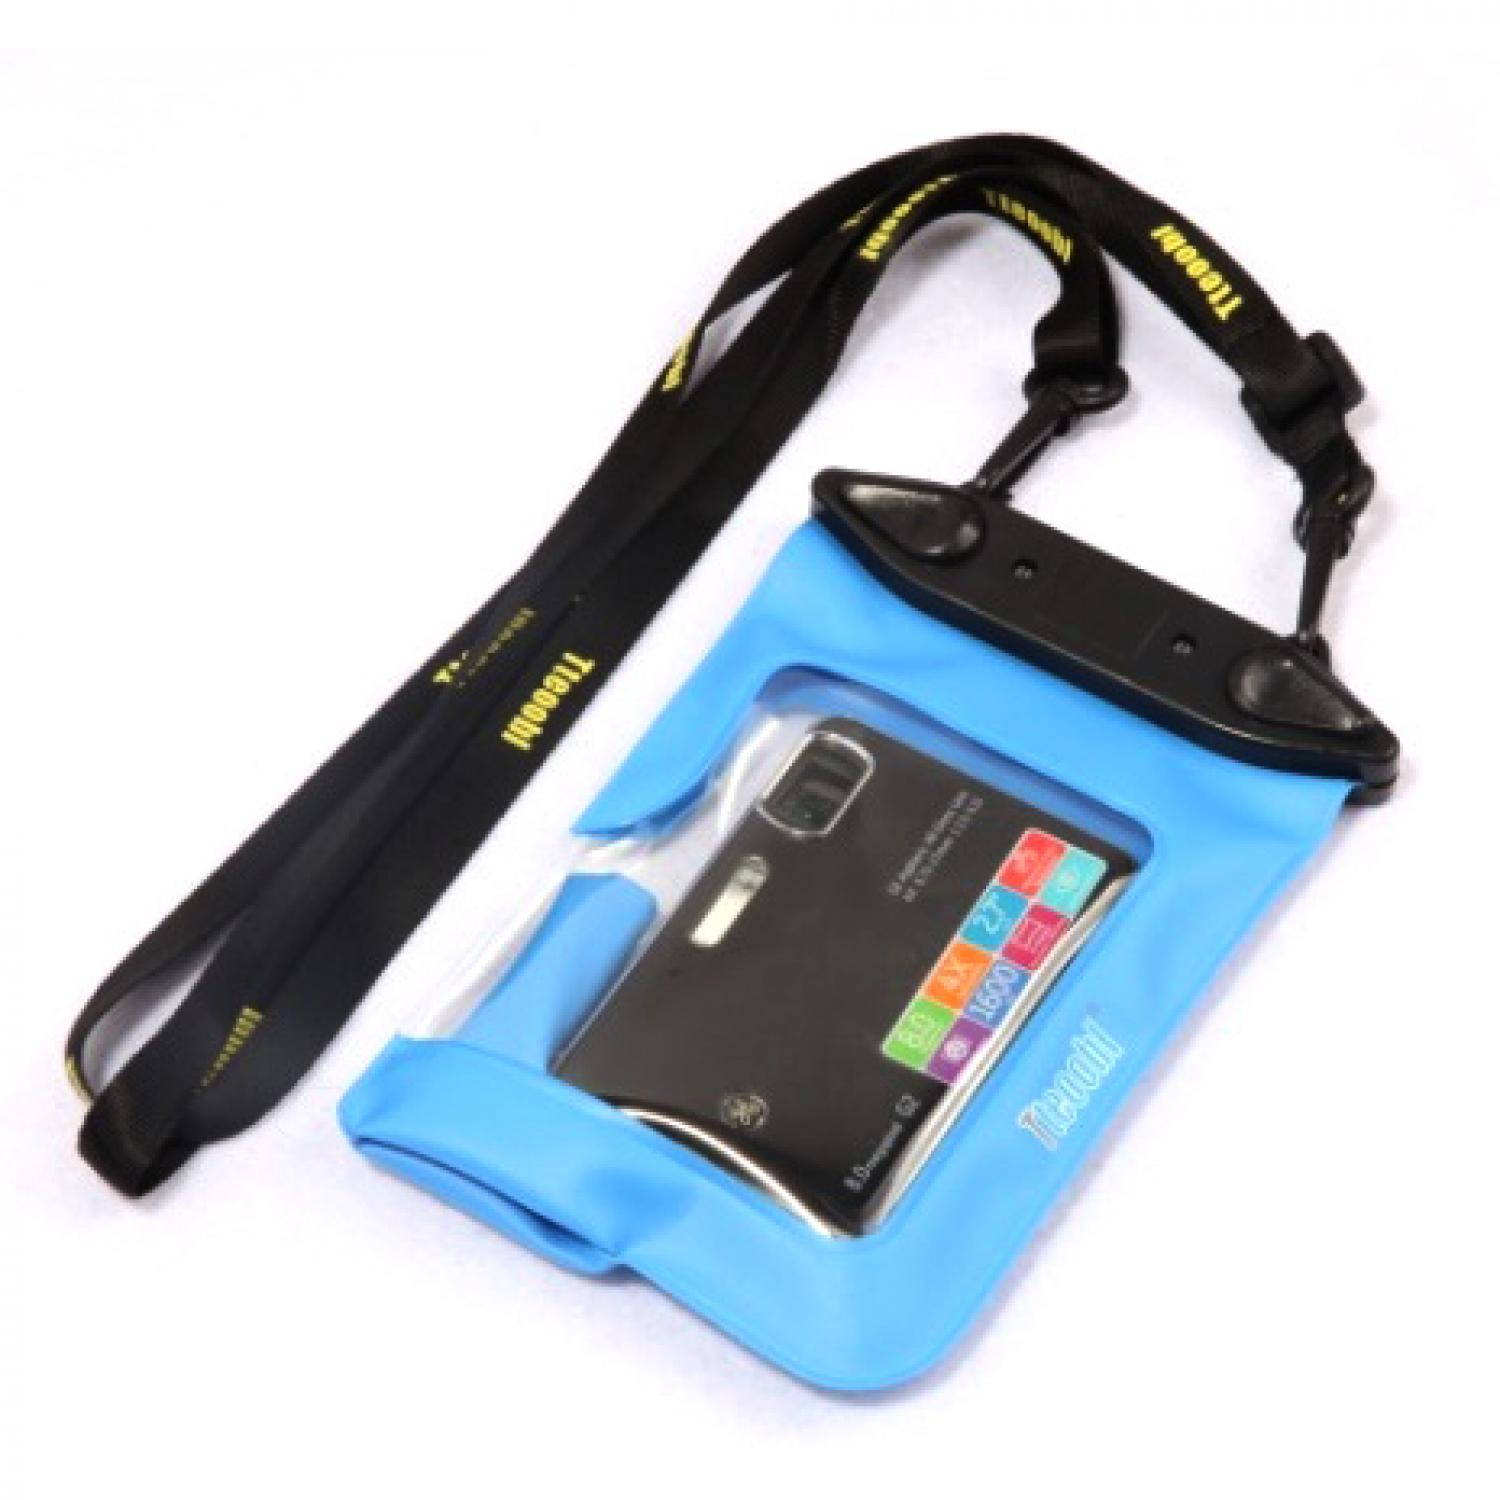 Tteoobl Finger Type Camera Waterproof Cover Bag without Lens - A-010C